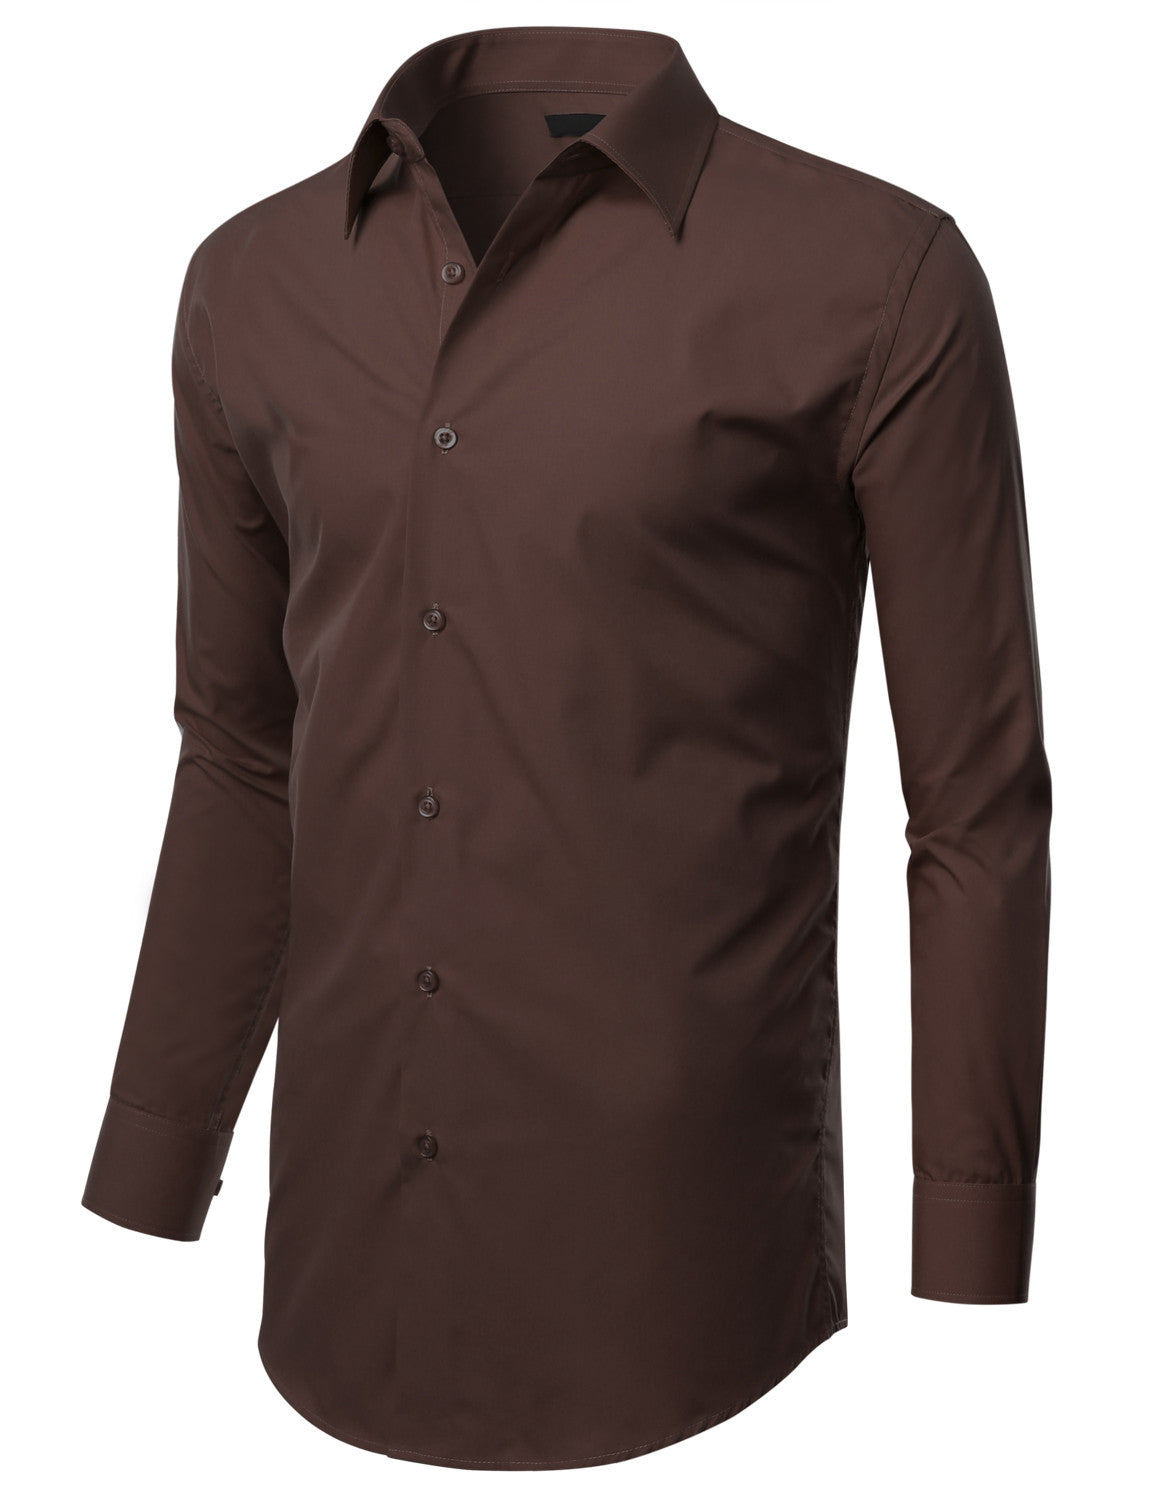 TC631BROWN Brown Slim Fit Dress Shirt w/ Reversible Cuff (Big & Tall Available)- MONDAYSUIT